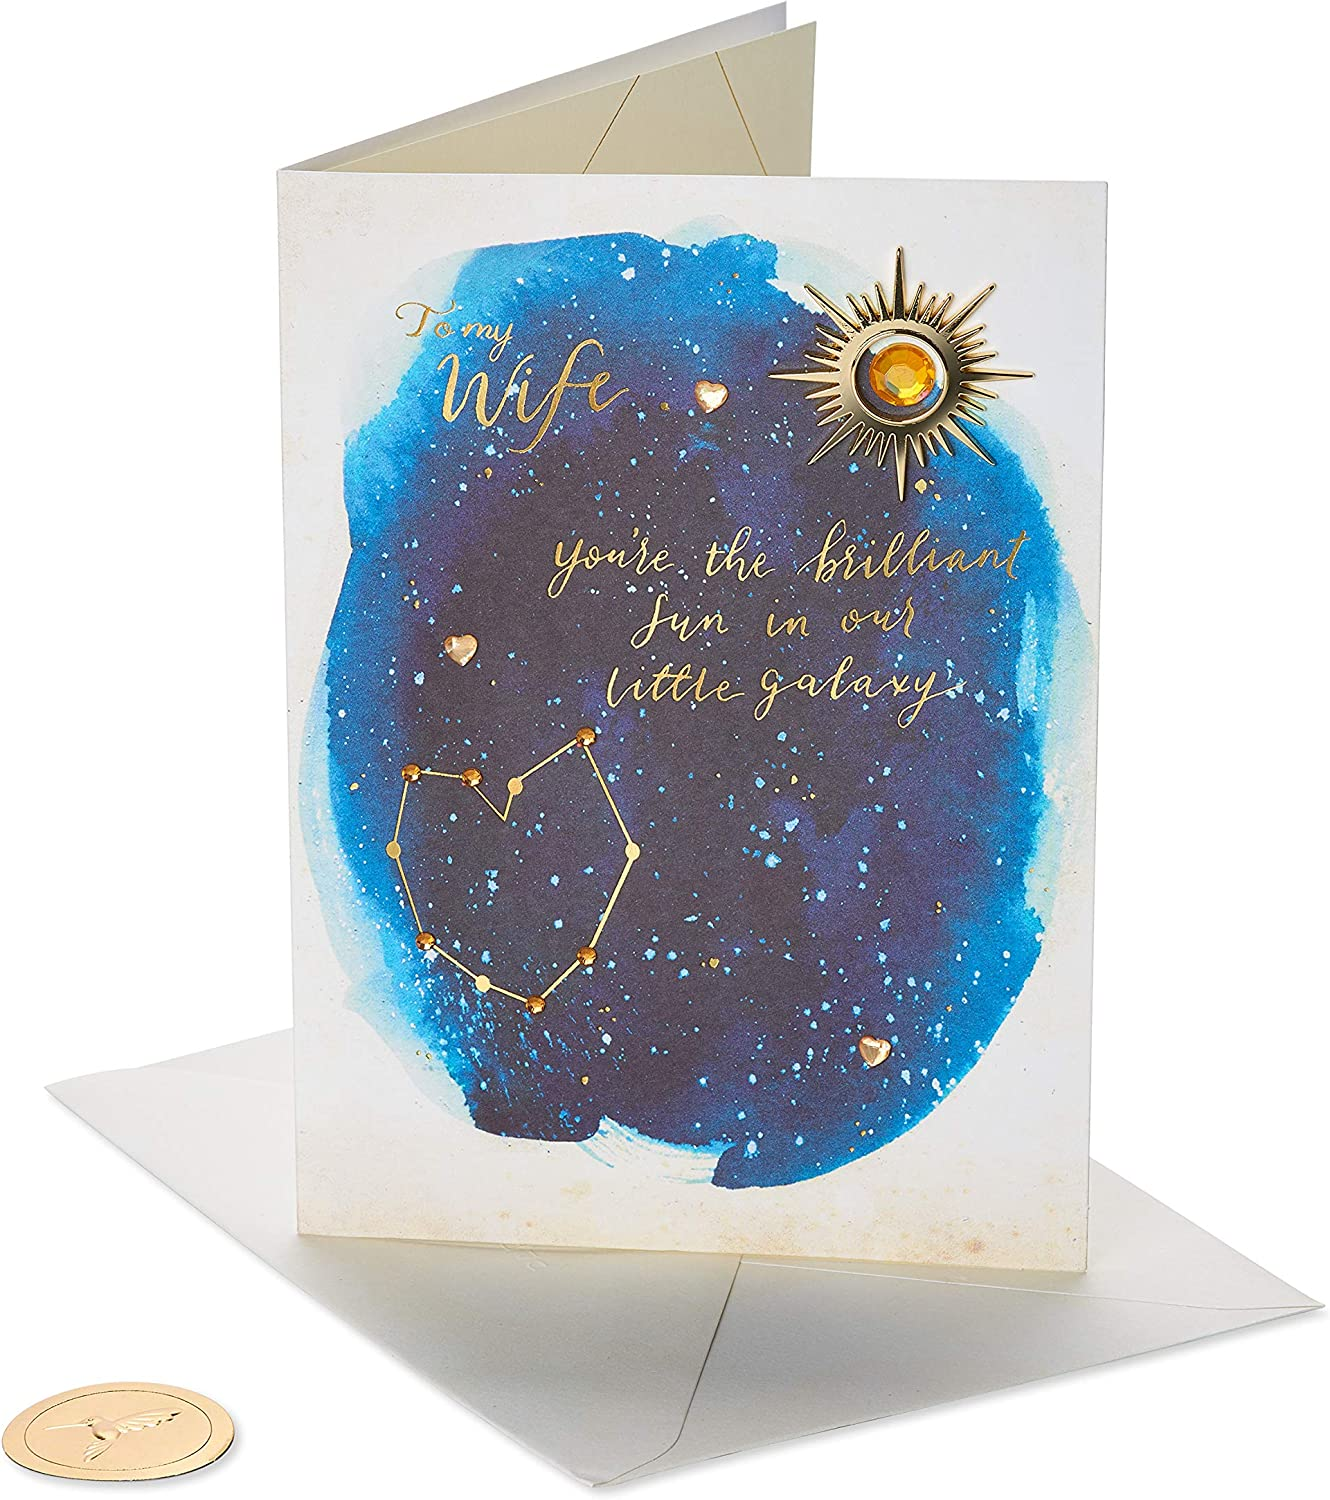 Papyrus Mother's Day Card Factory outlet for 100% quality warranty! Wife Little Galaxy Our